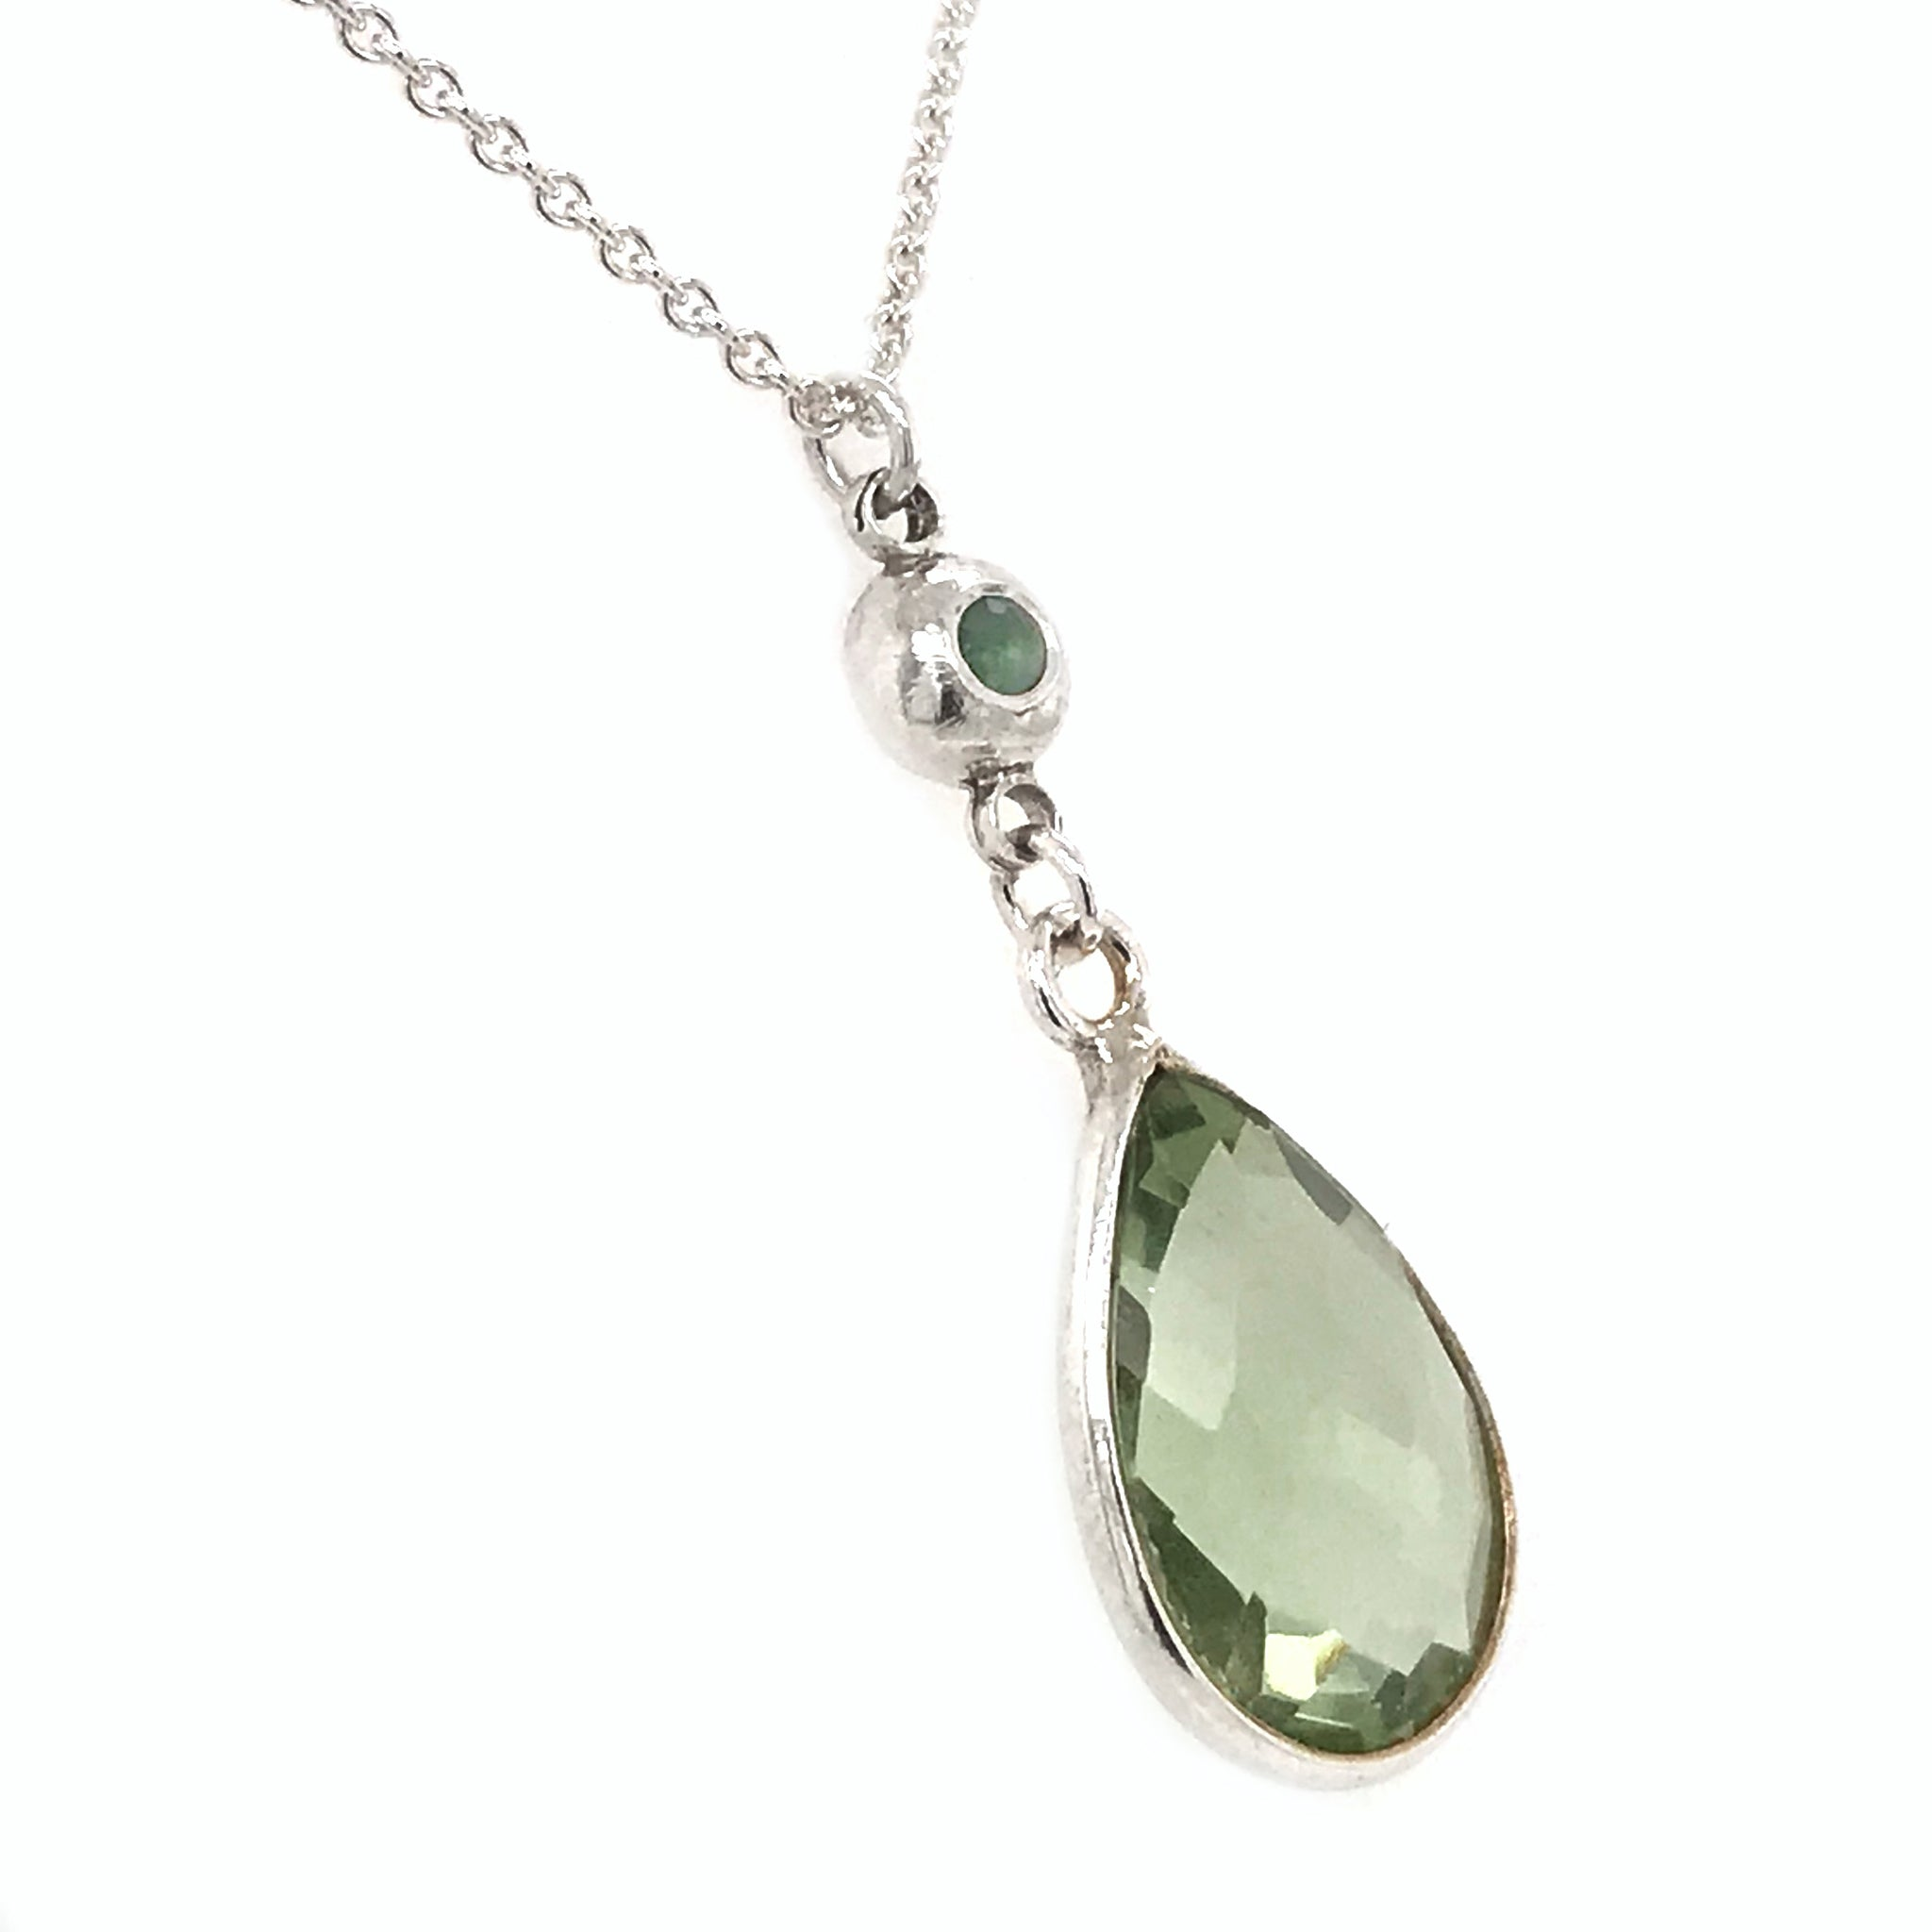 green-quartz-pendant-with-solid-silver-pebble-charm-peridot-stone-necklace-kriket-broadhurst-jewellery